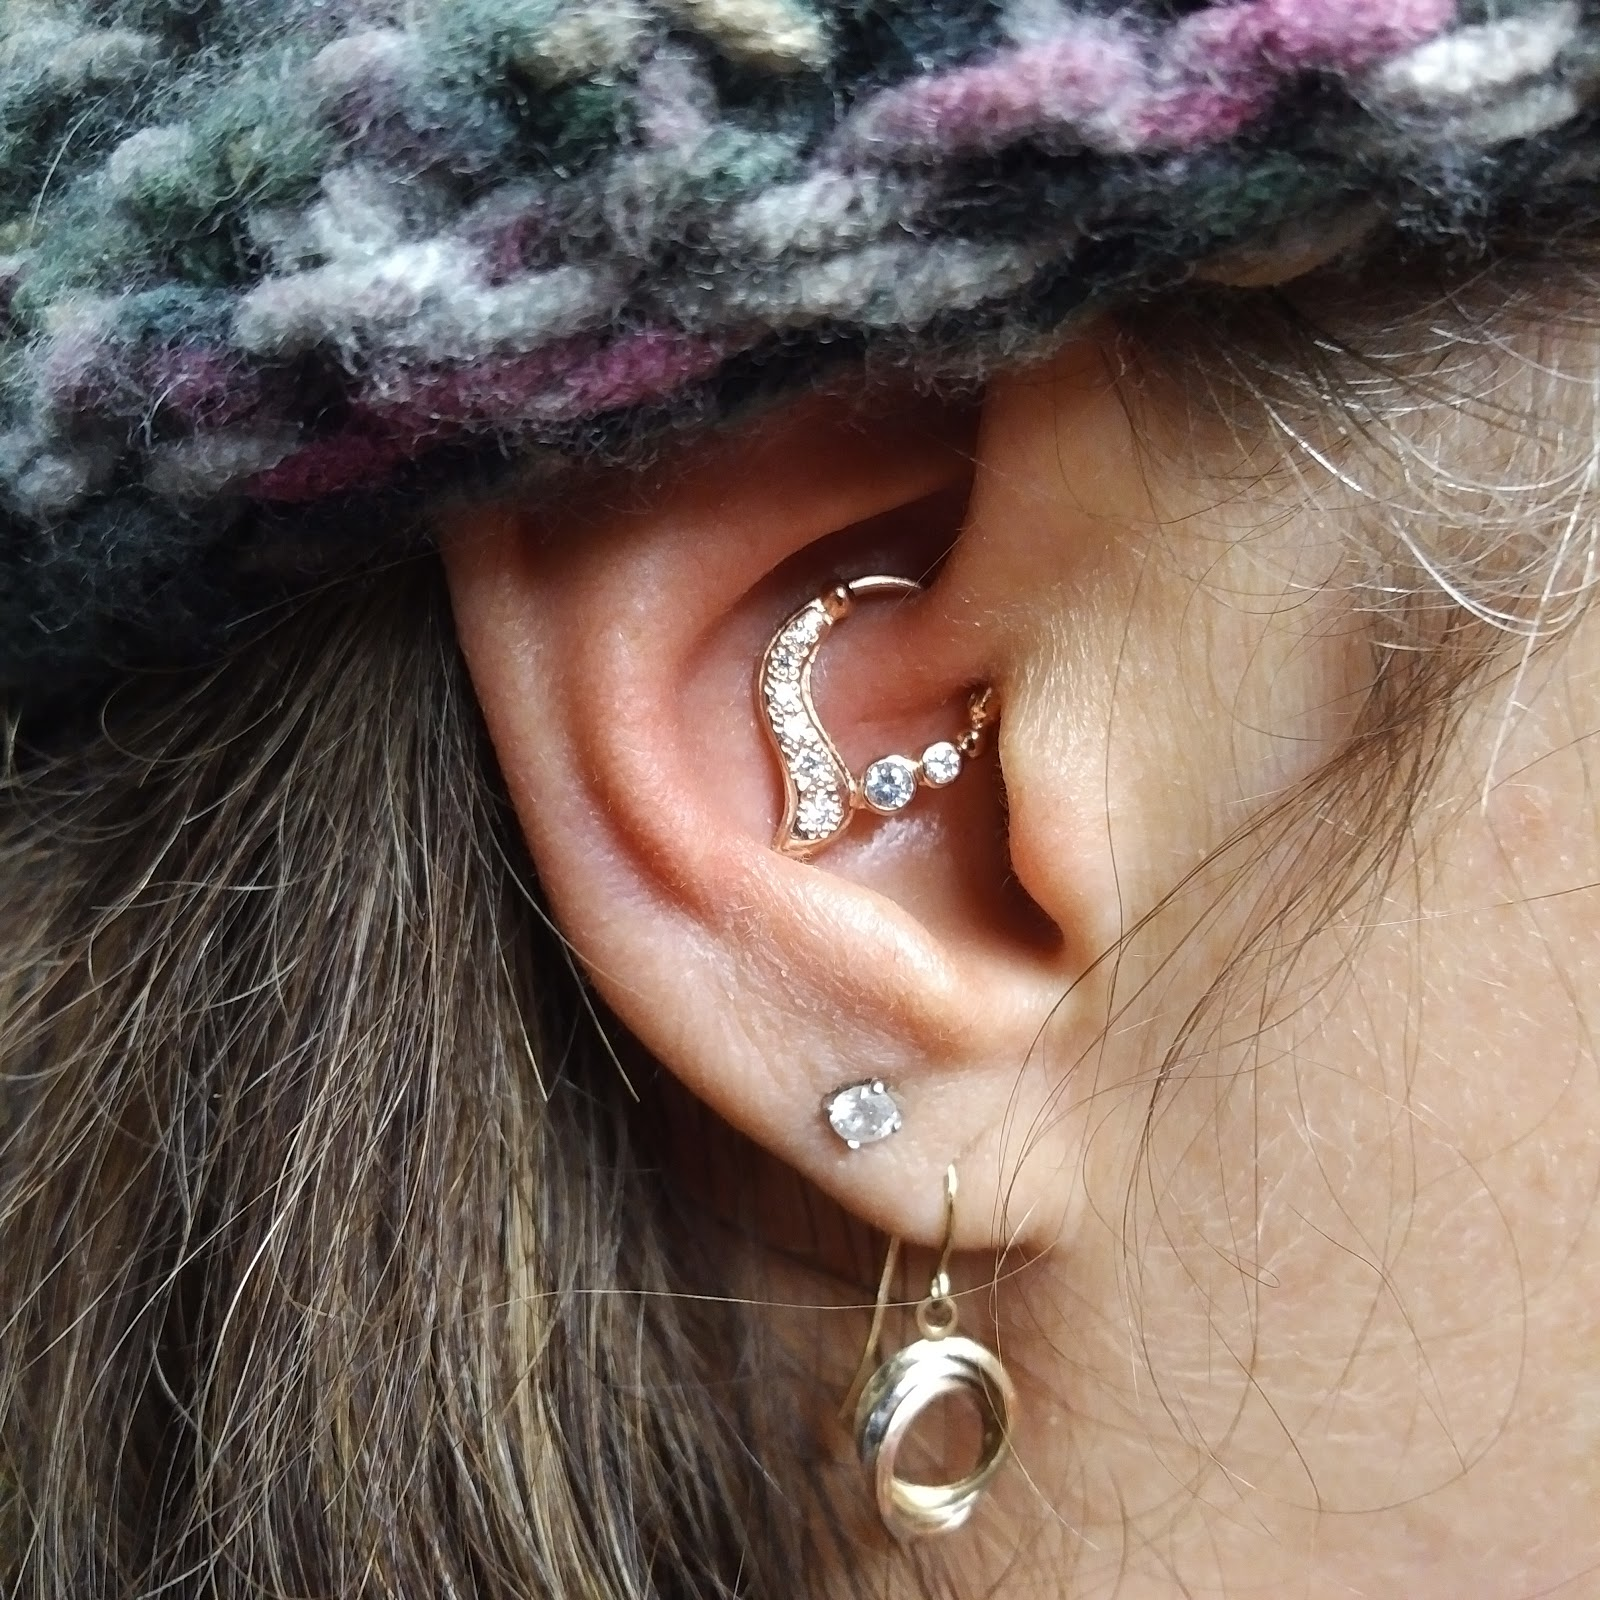 Pros and cons of hood piercing